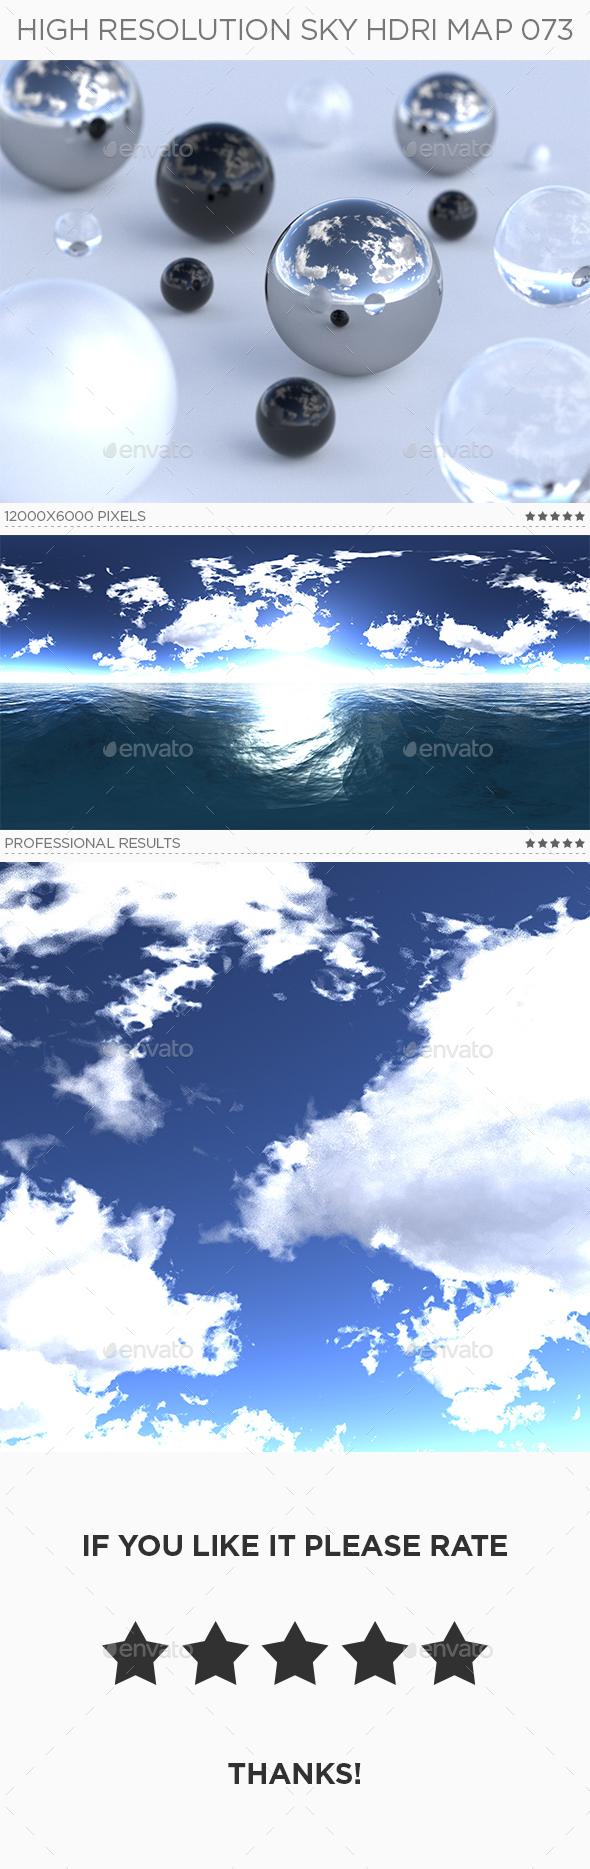 High Resolution Sky HDRi Map 073 - 3DOcean Item for Sale